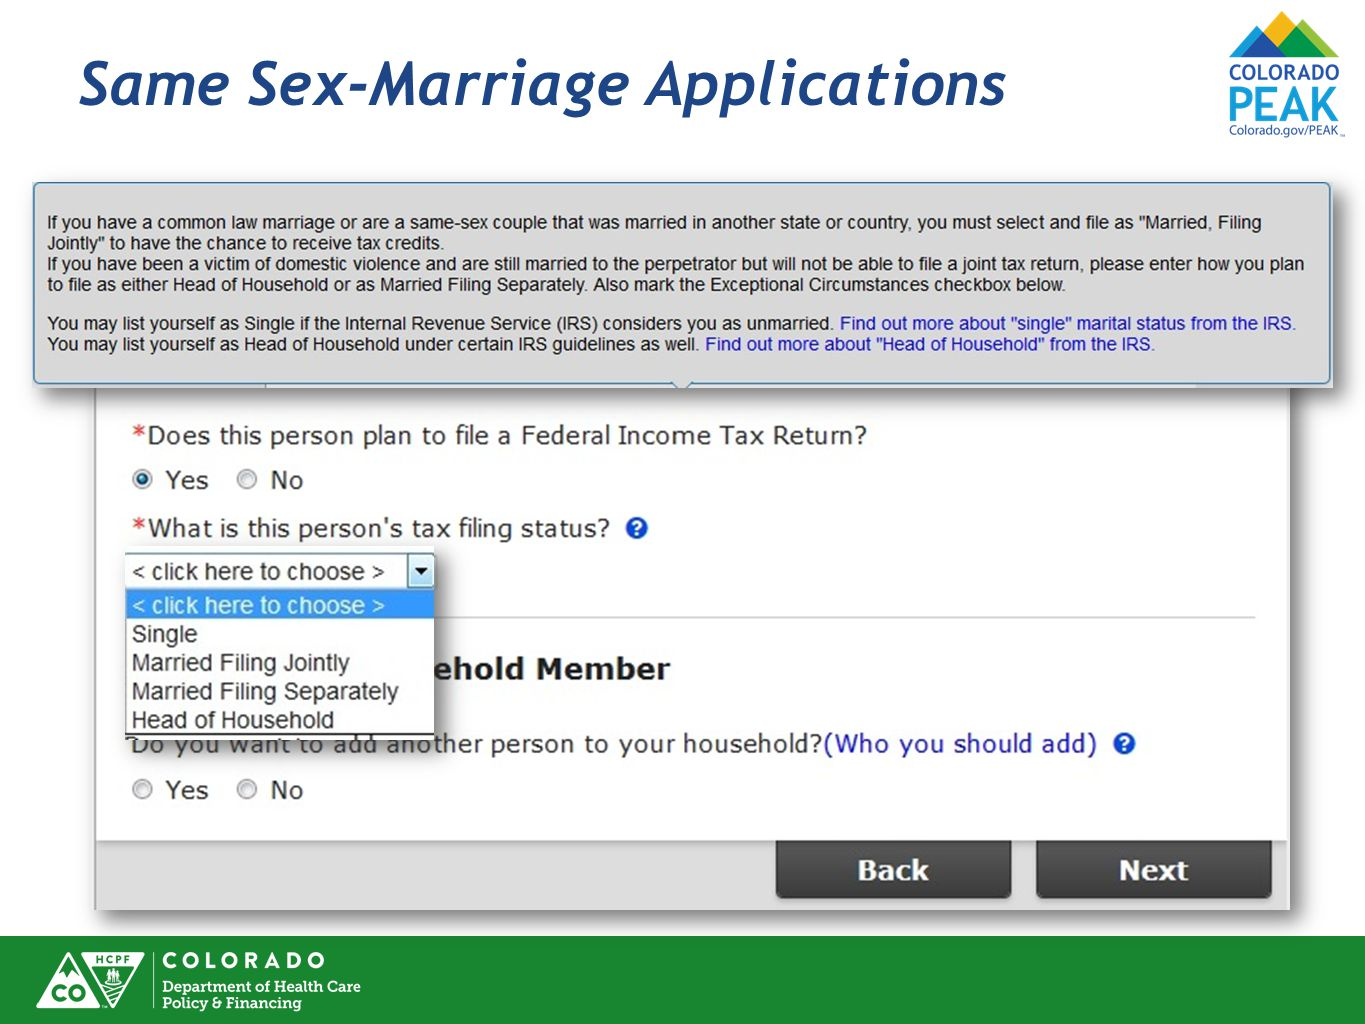 Same Sex-Marriage Applications